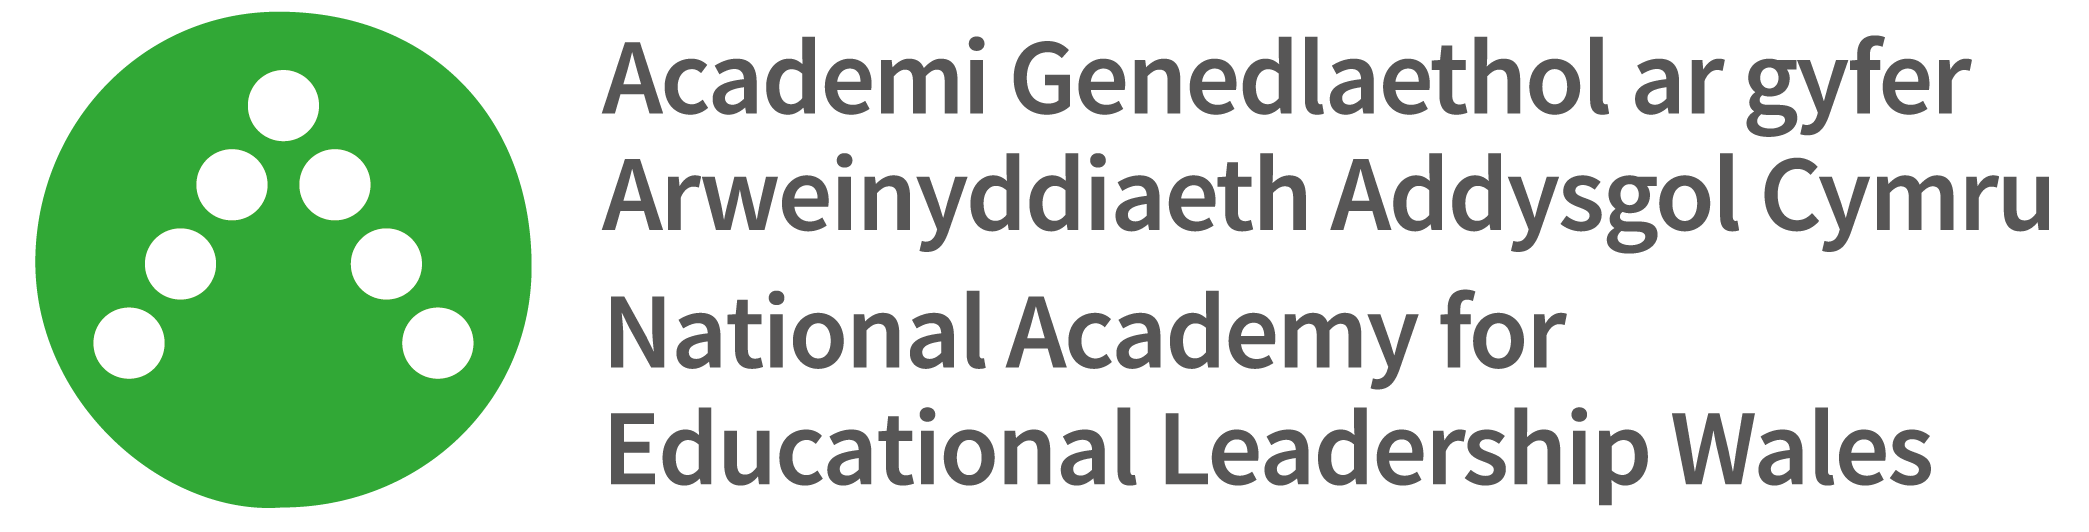 National Academy for Educational Leadership